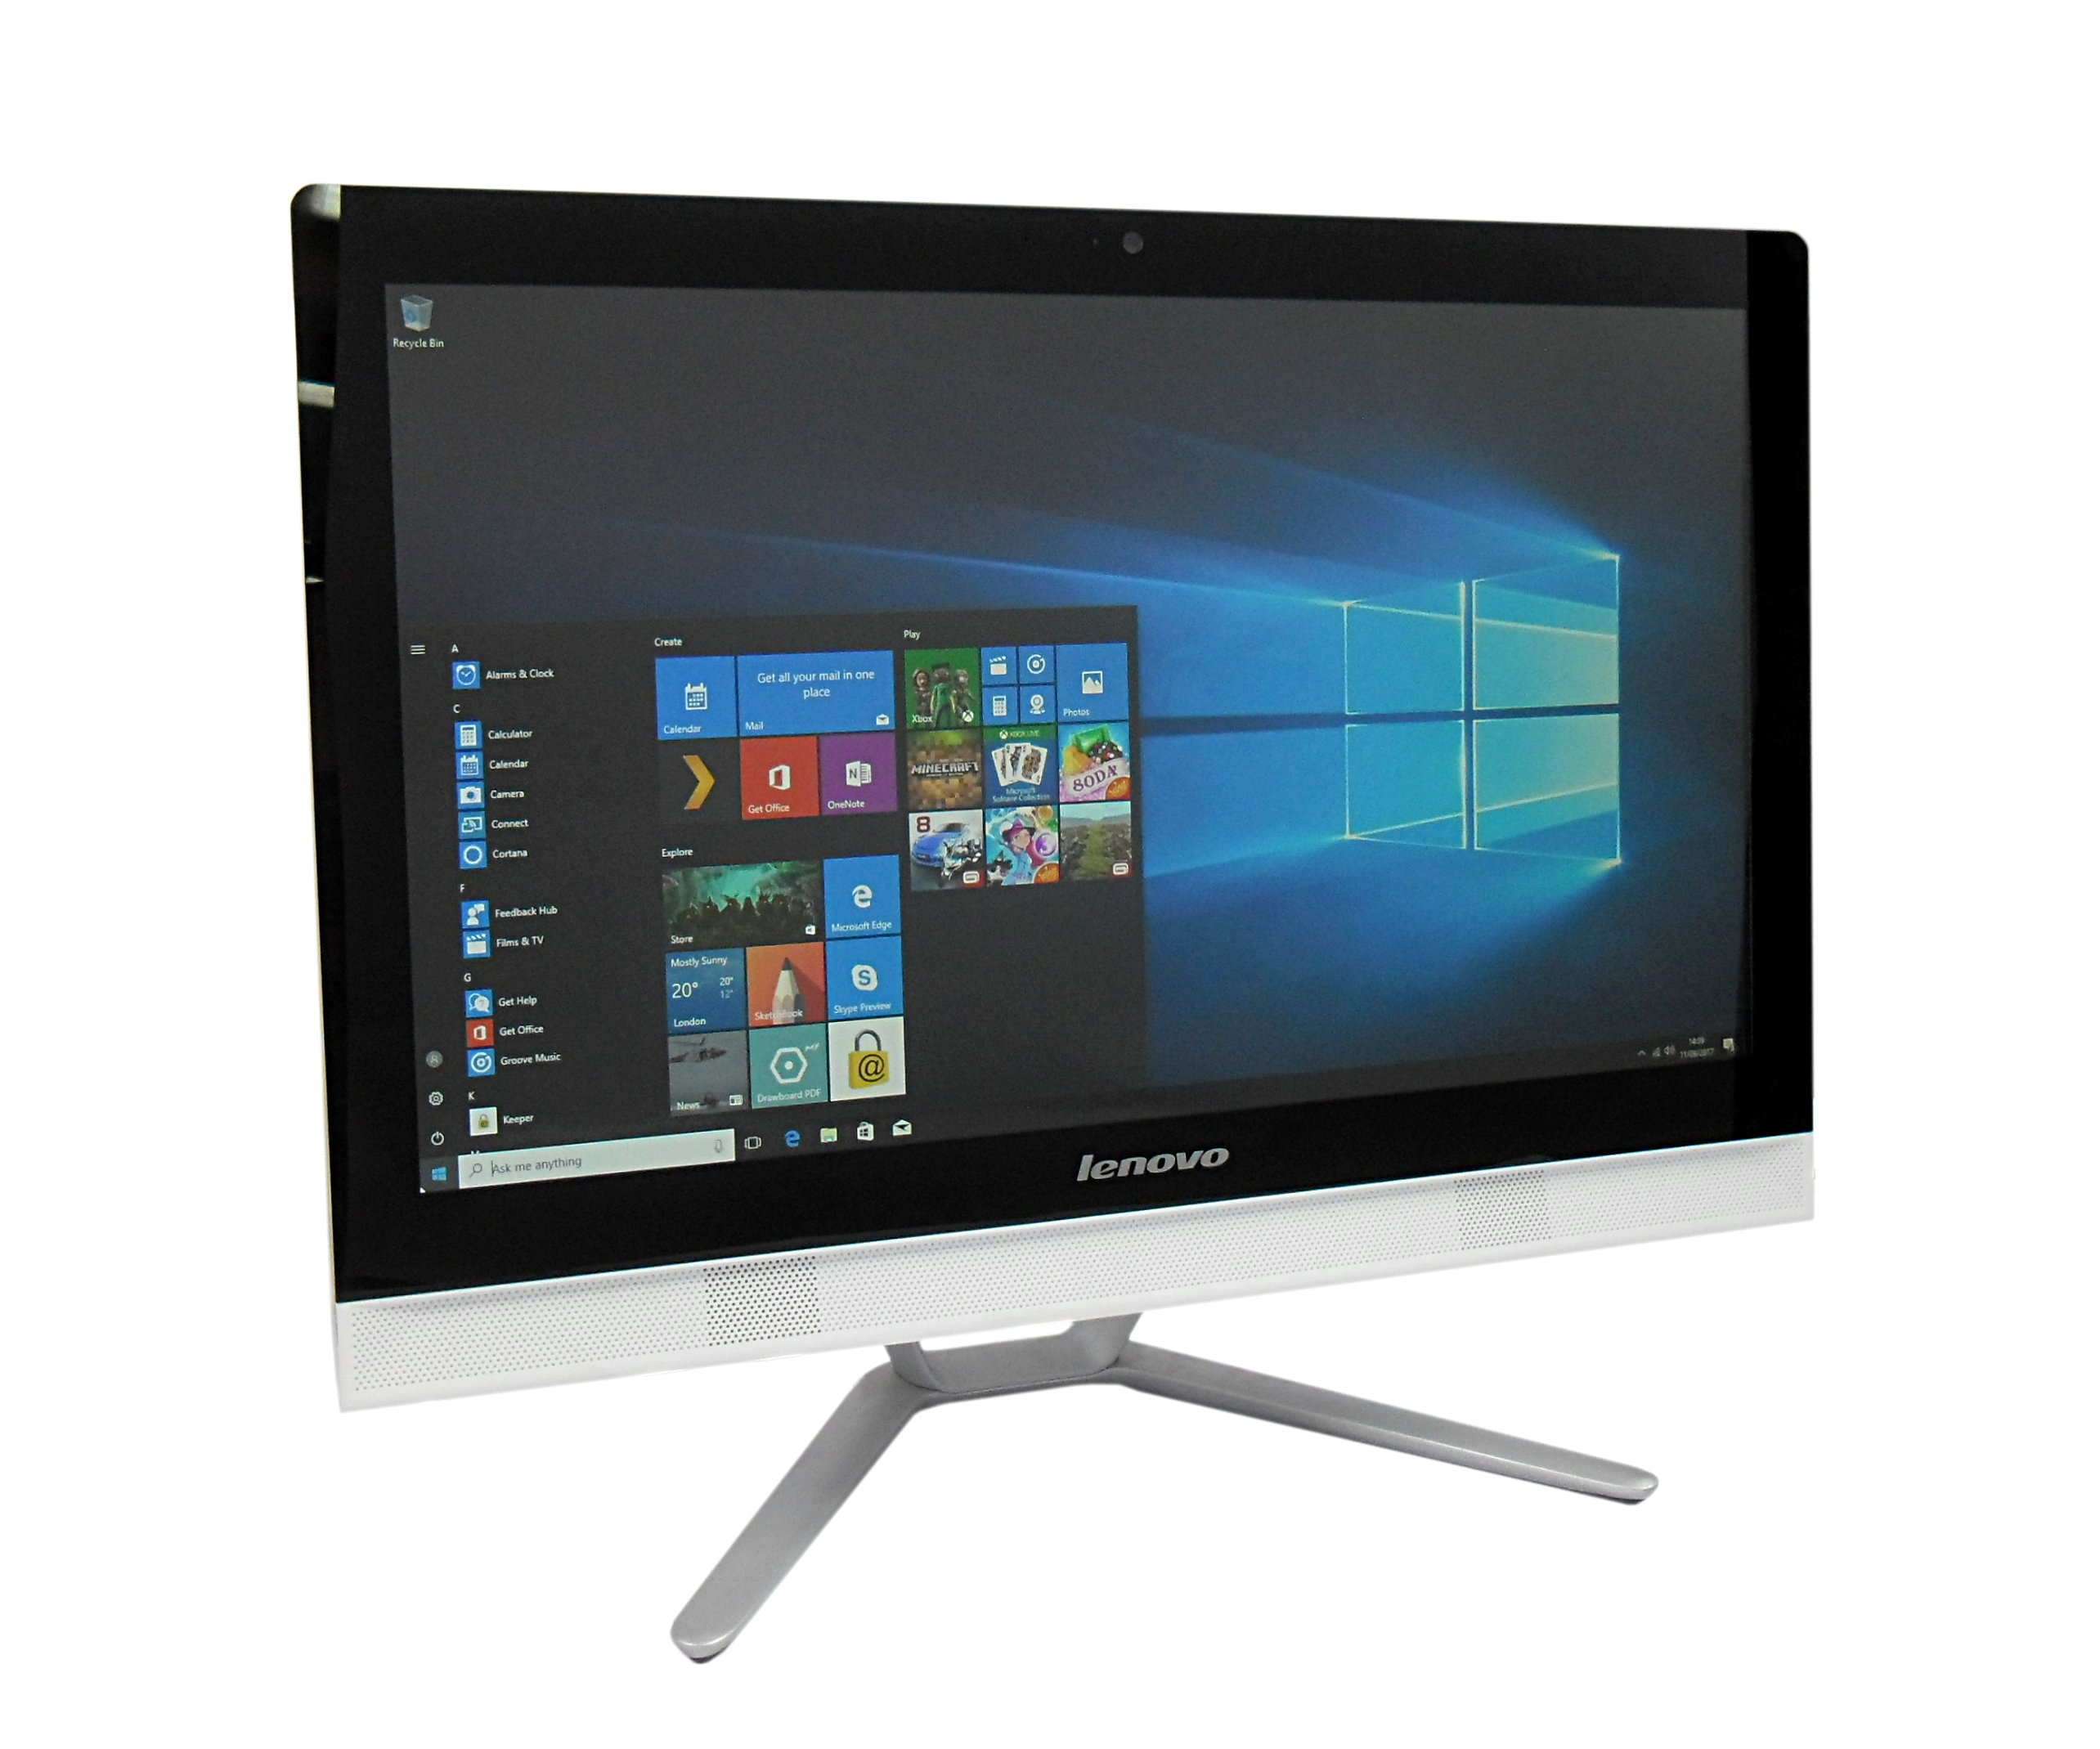 "Lenovo C40-30 21.5"" Pentium Dual-Core/500GB HDD/8GB RAM/Non-Touch All in One PC"